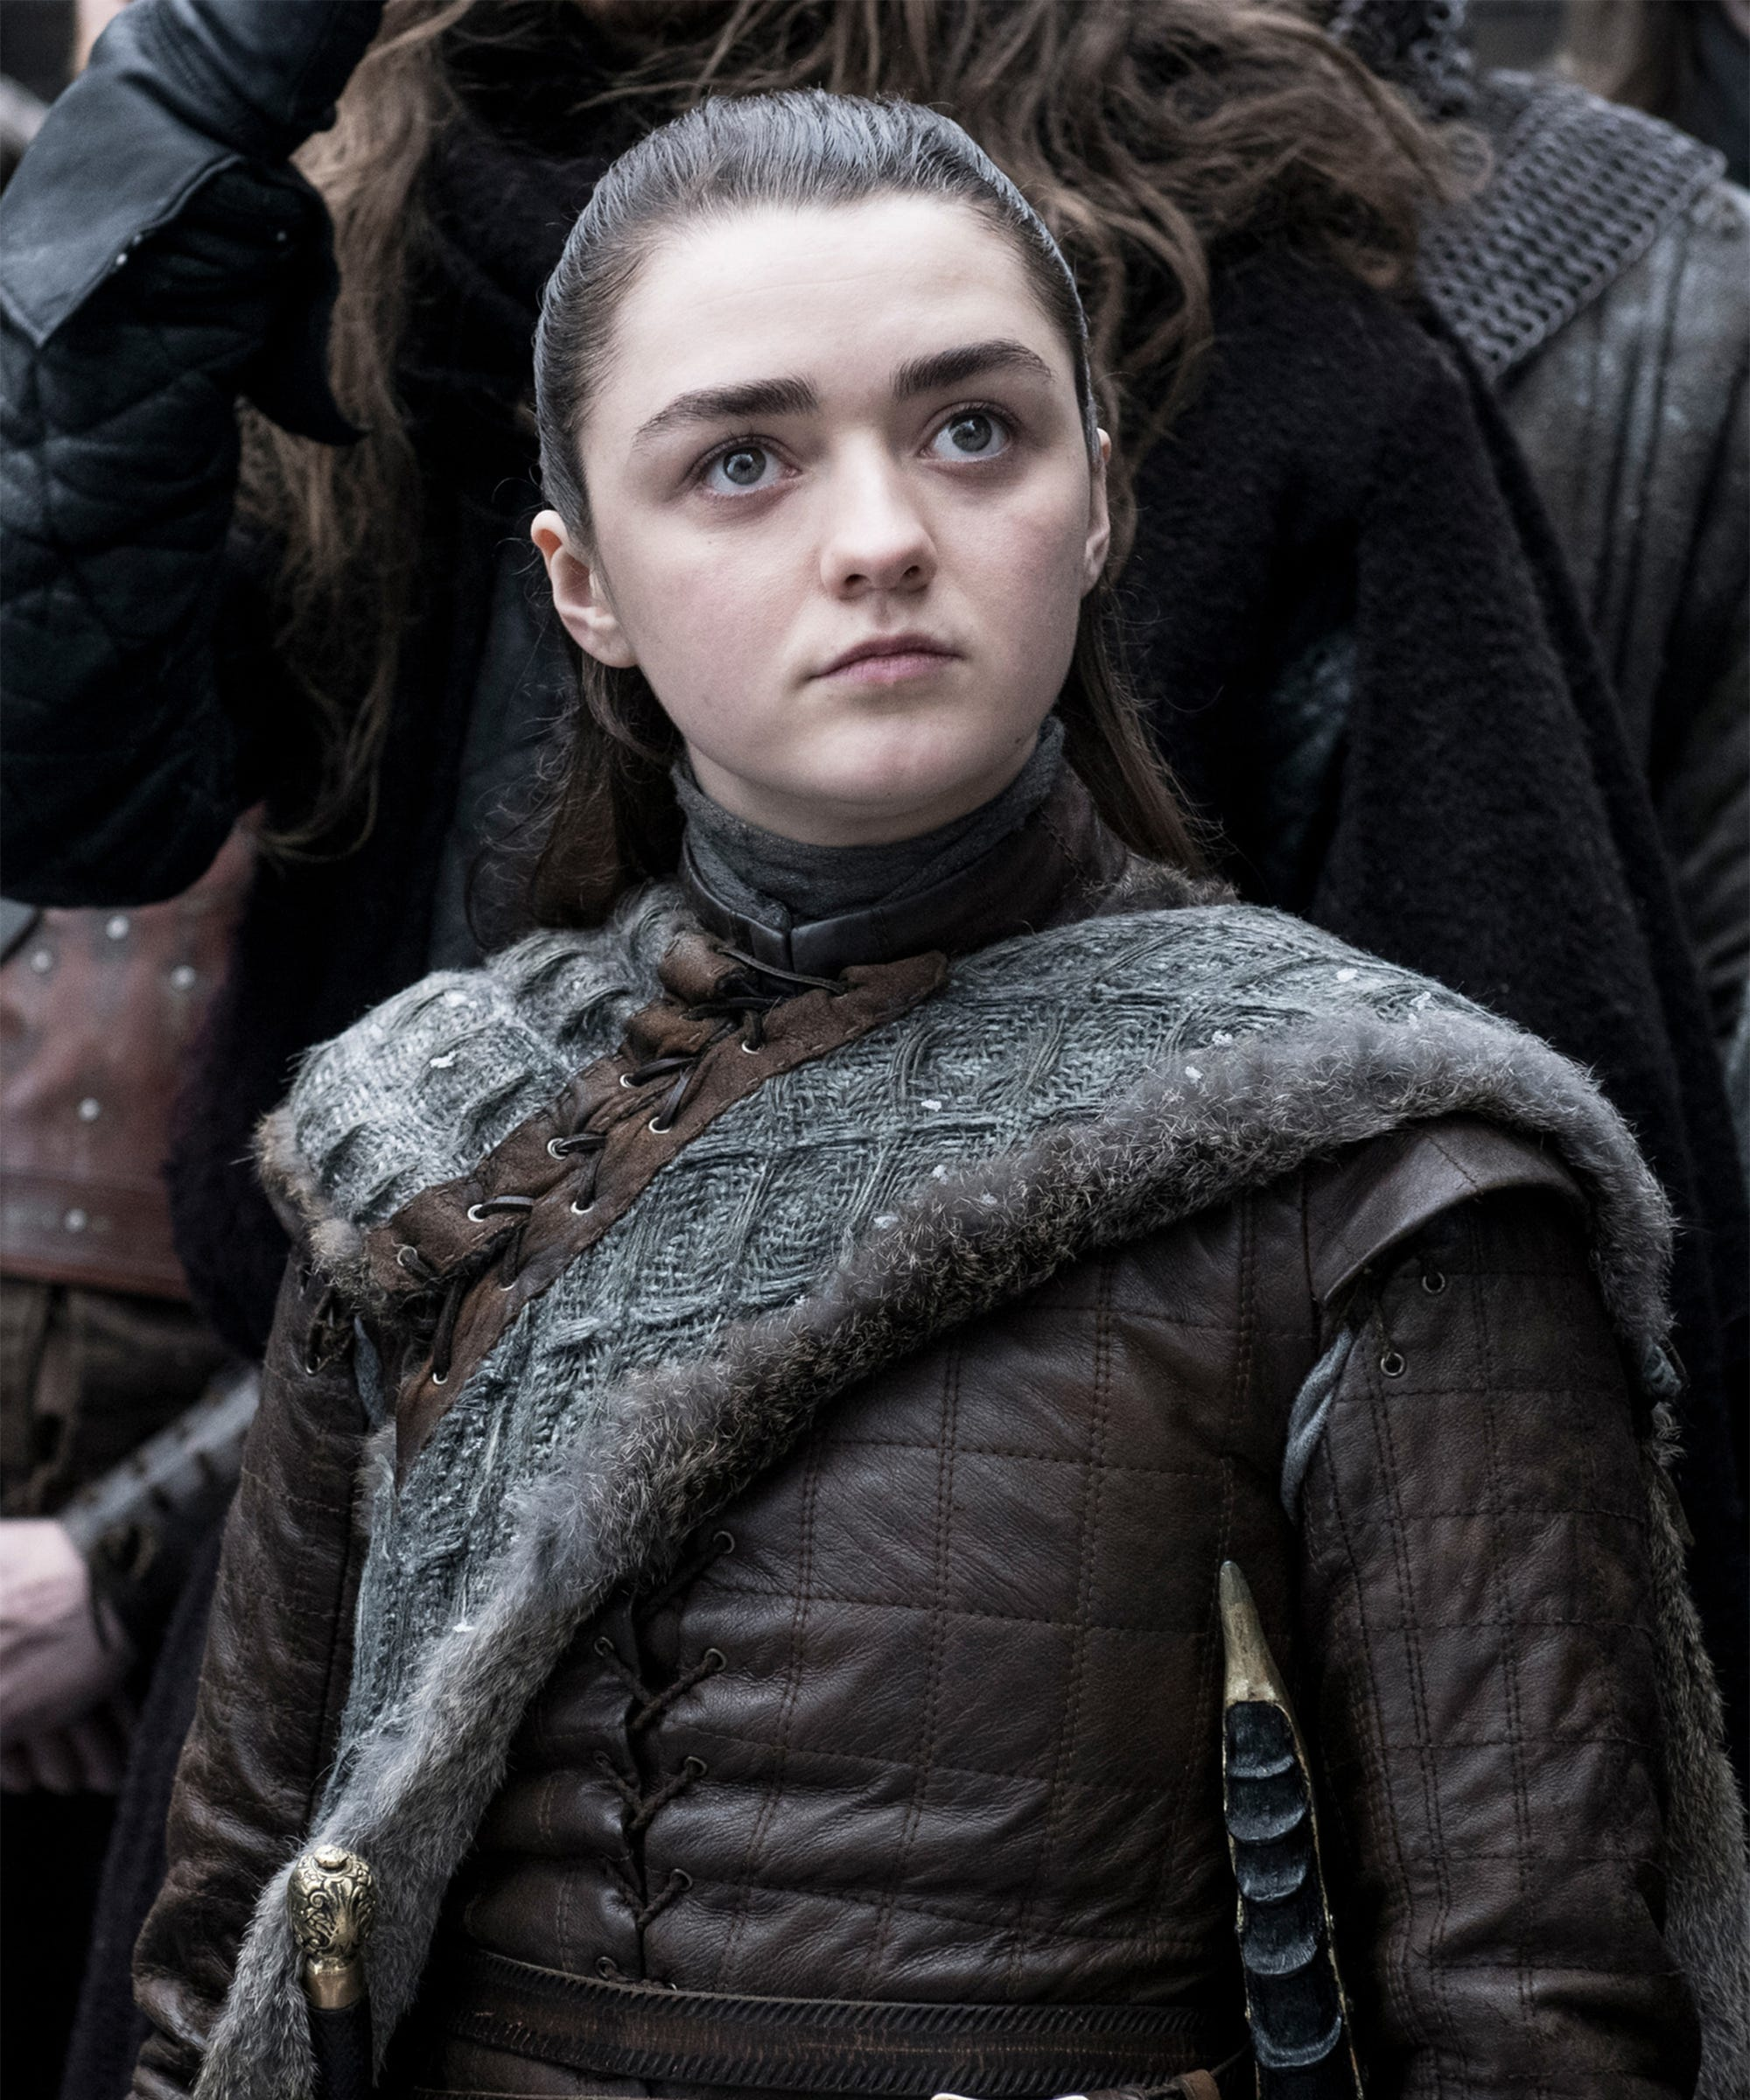 Maisie Williams Set That Sexist Arya Theory Straight At GOT Comic-Con Panel